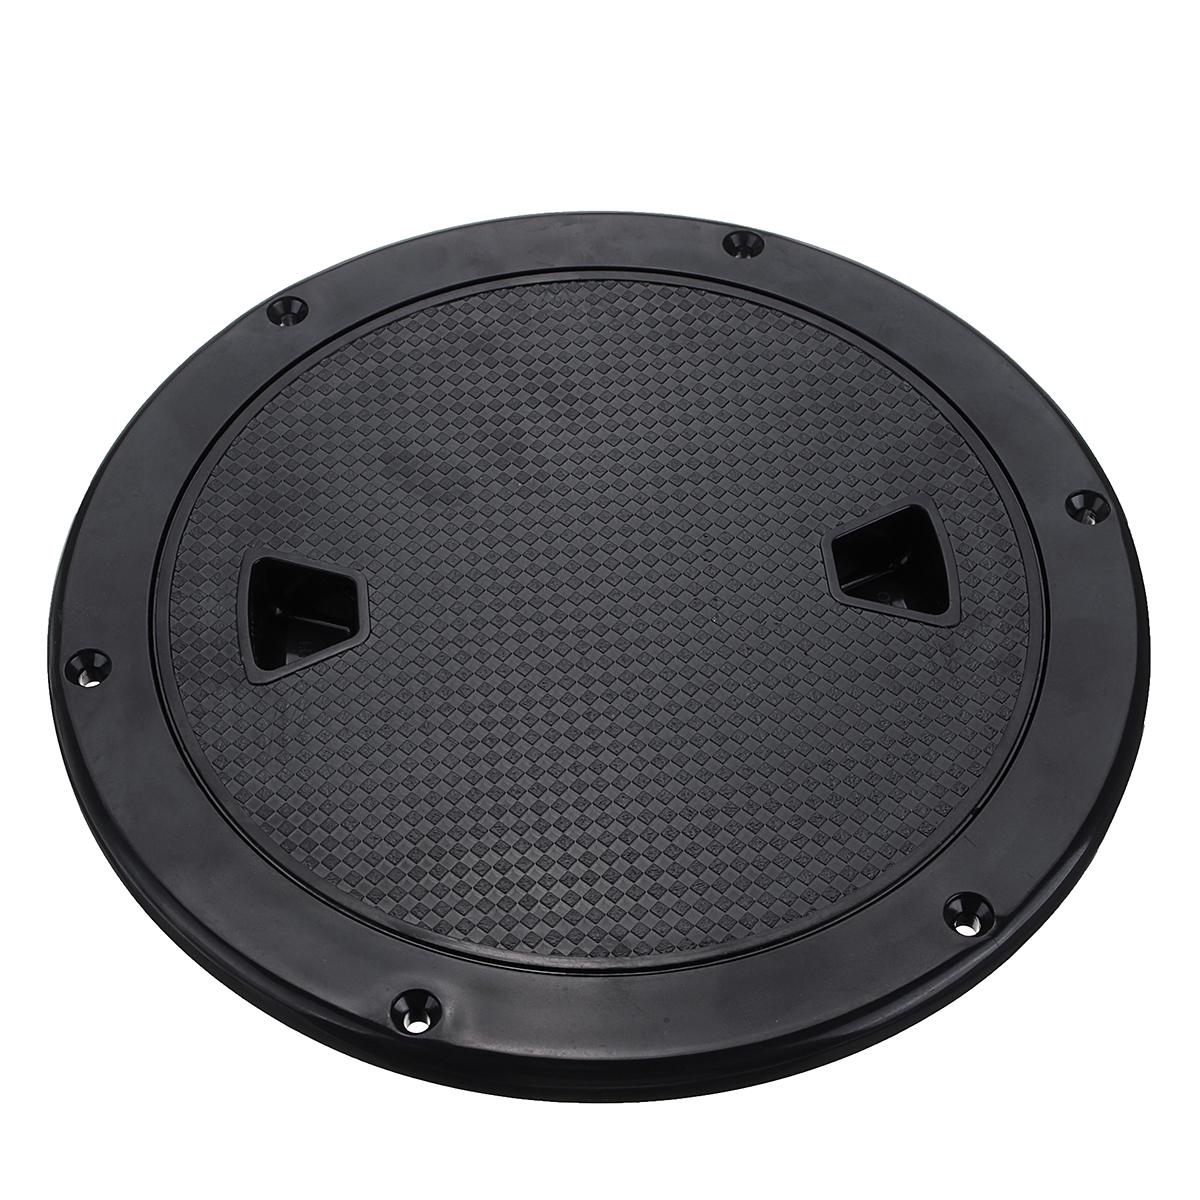 4/6/8 Inch Marine Boat Inspection Hatch Cover Screw Out Deck Plate Compartment Access